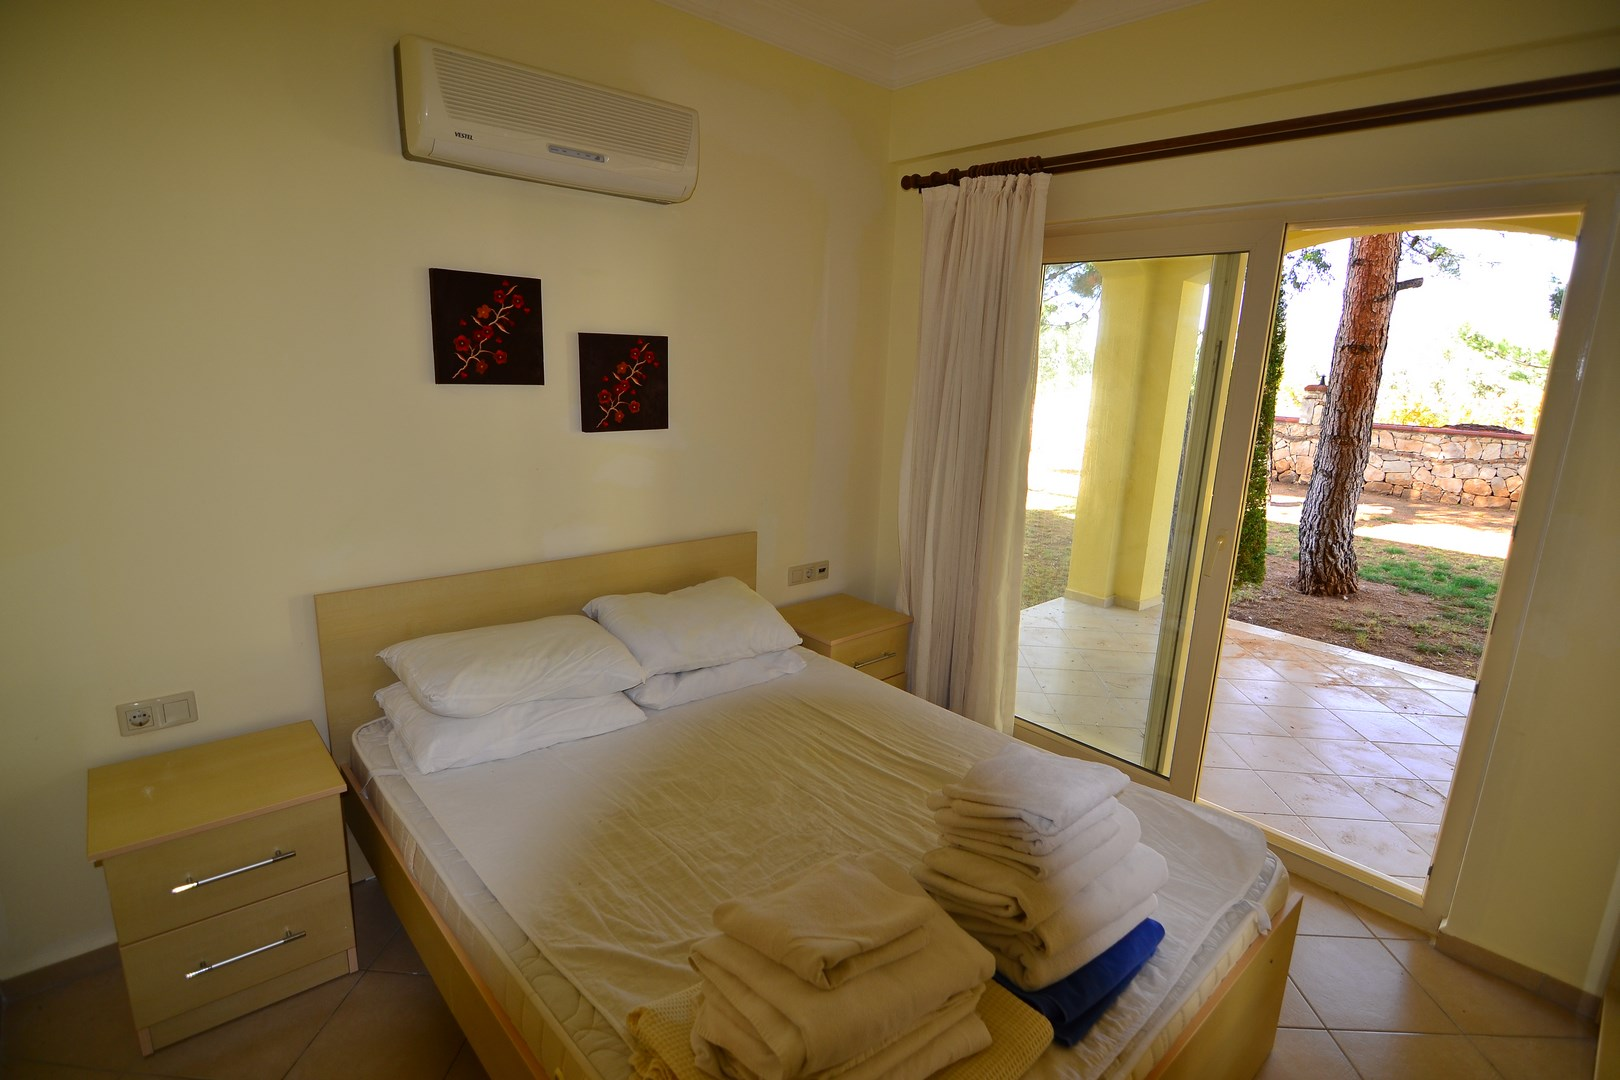 2 Bedroom apartment for sale in Beach front complex Apollonium